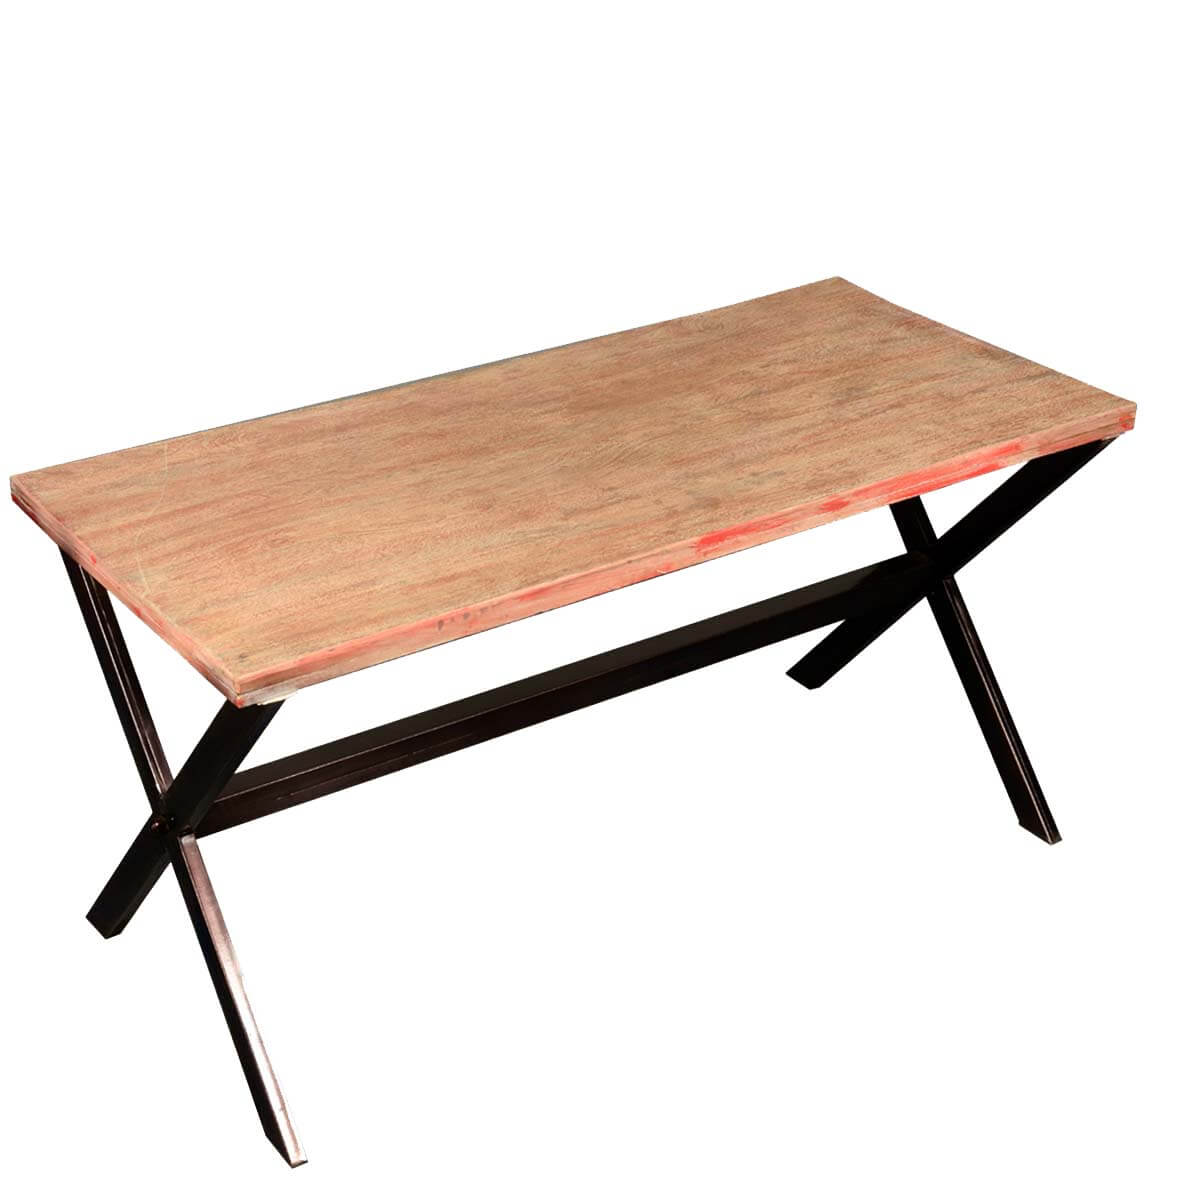 Picnic Style Reclaimed Wood Iron Trestle Coffee Table